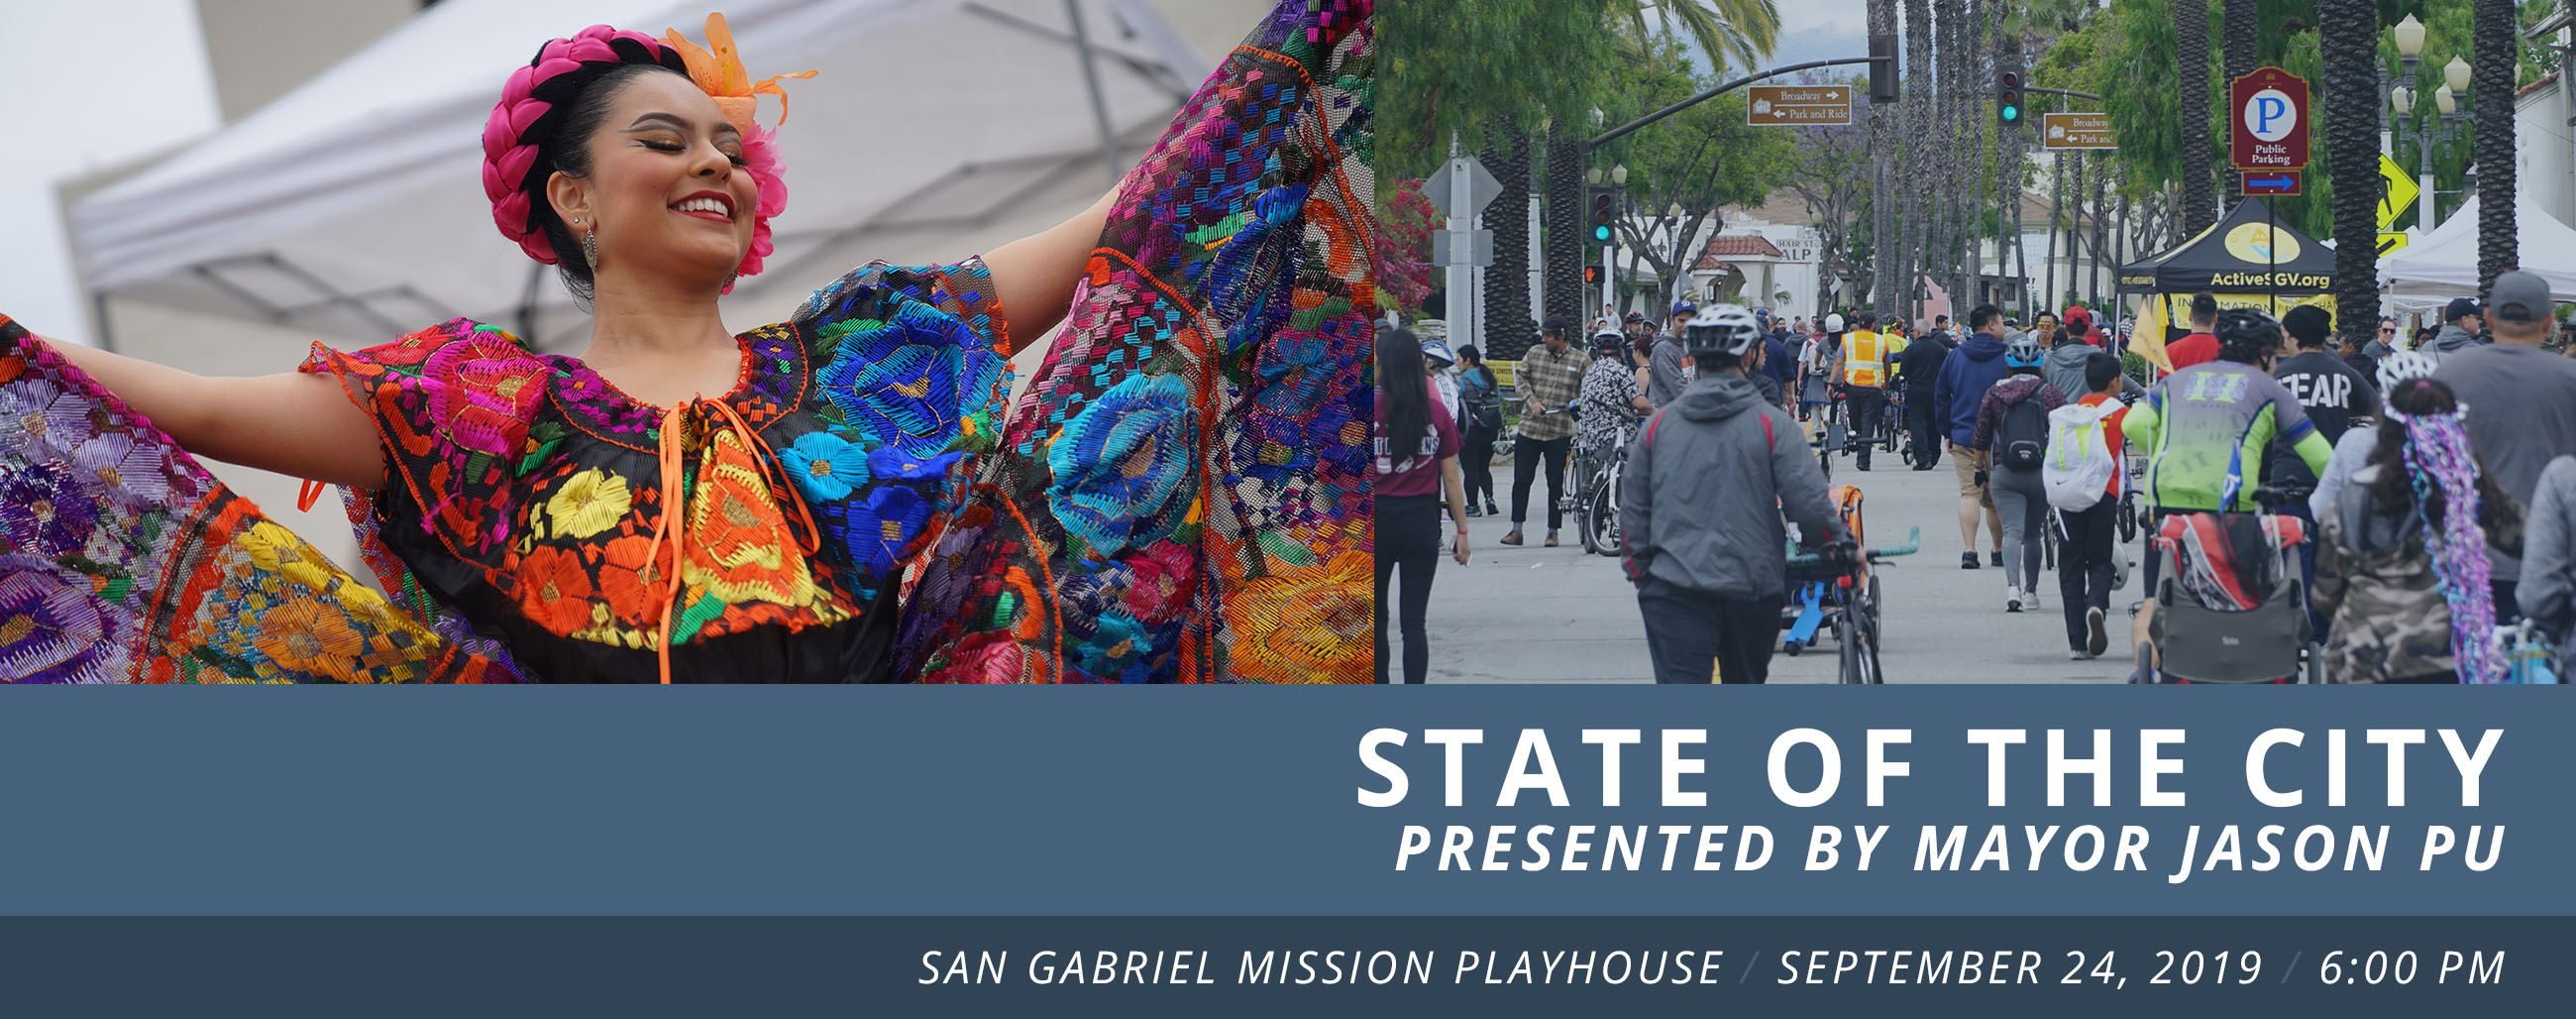 State of the City - Join us on September 24 at the Playhouse